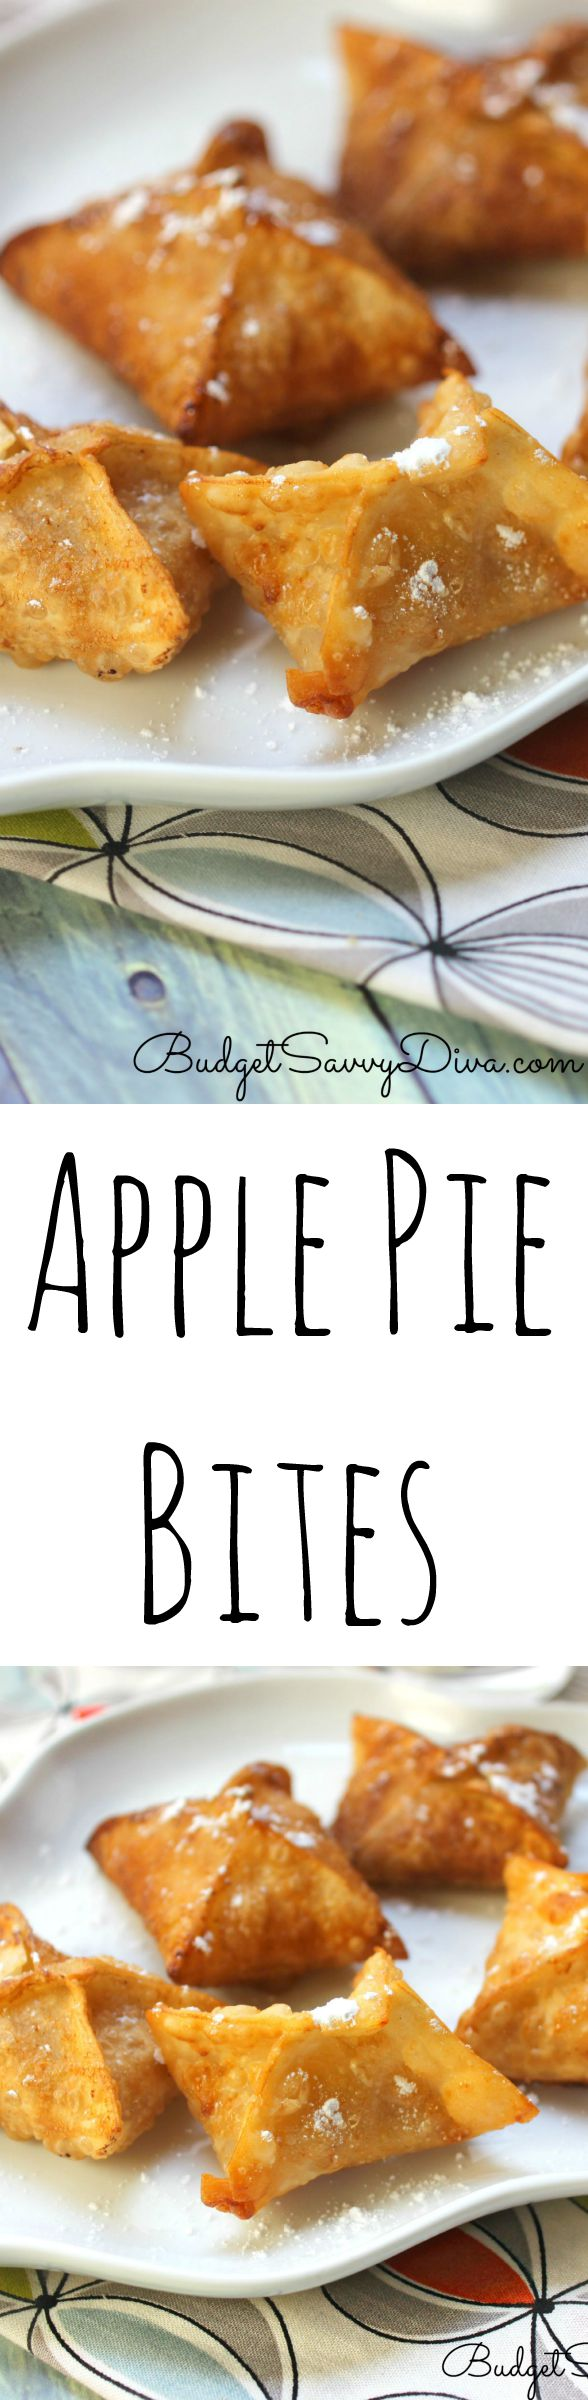 Apple Pie Bites FINAL